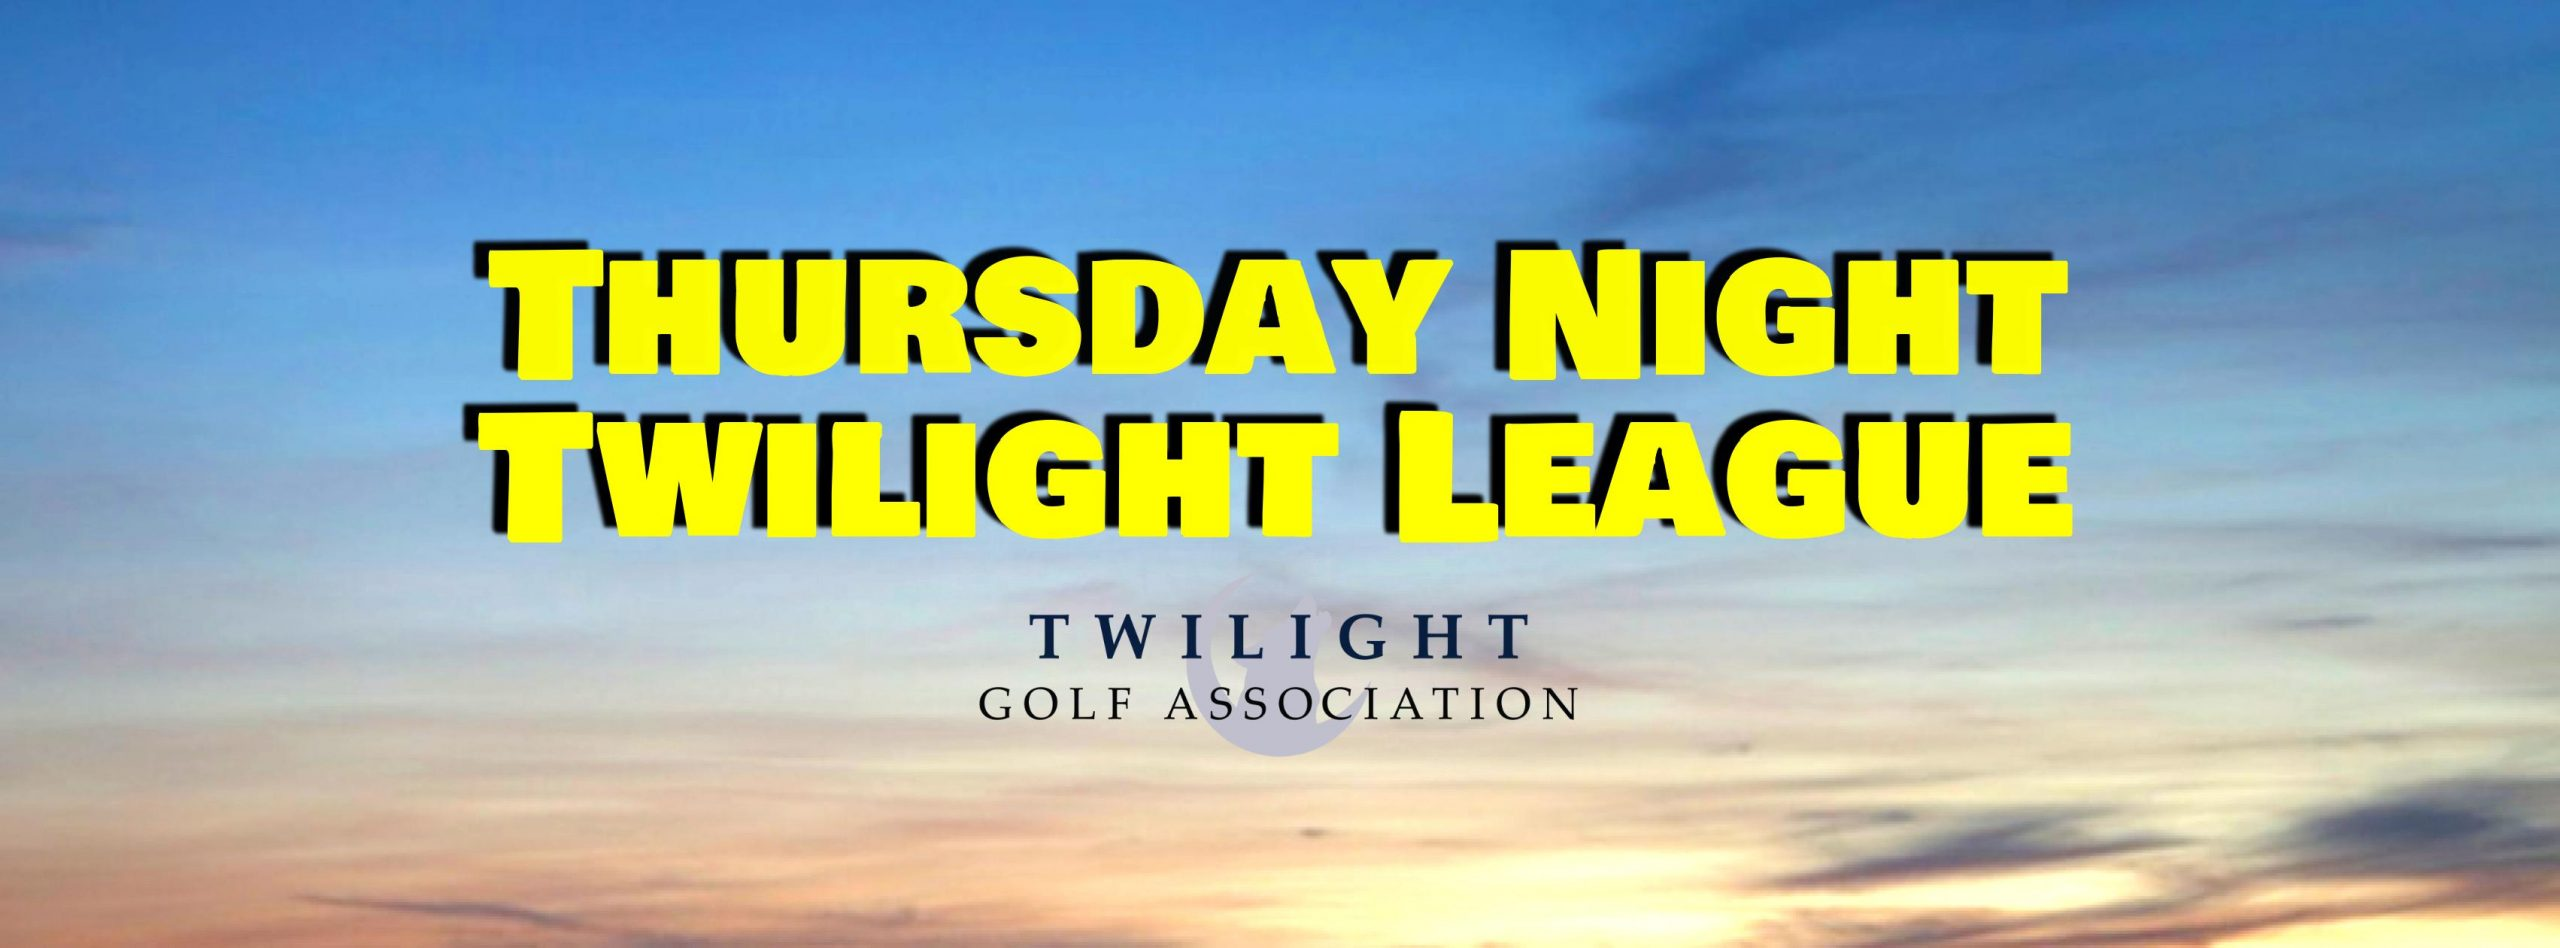 Thursday Twilight League at White Plains Golf Course